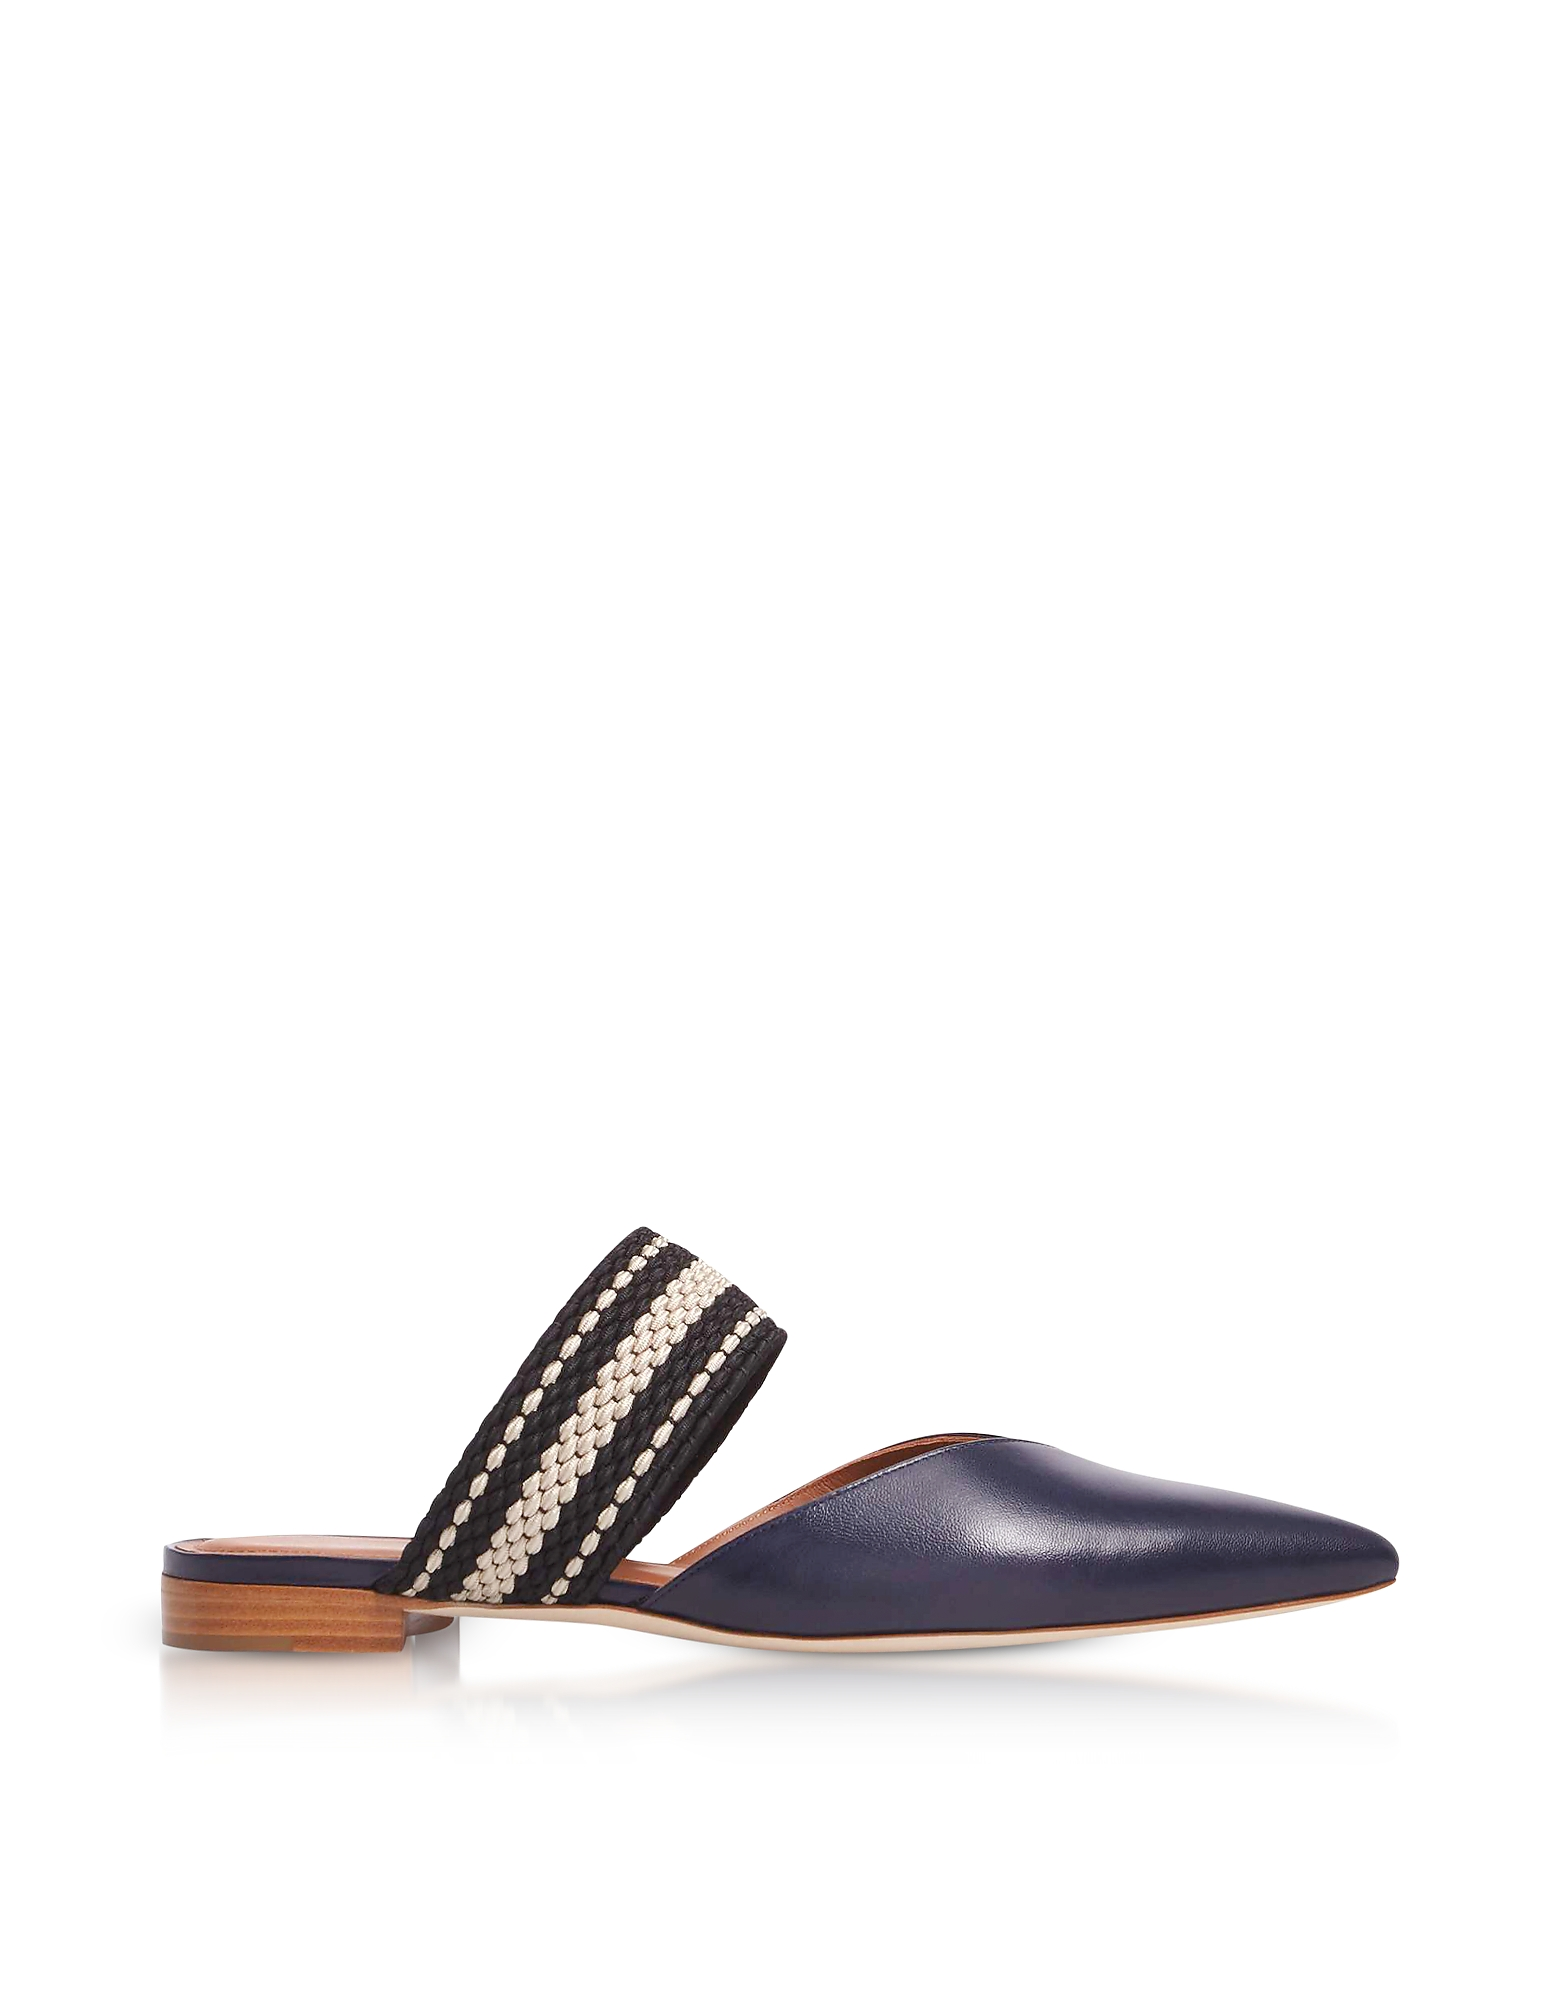 Malone Souliers Shoes, Hannah Navy Blue Nappa Leather Flat Mules w/Black-Beige Elastic Band